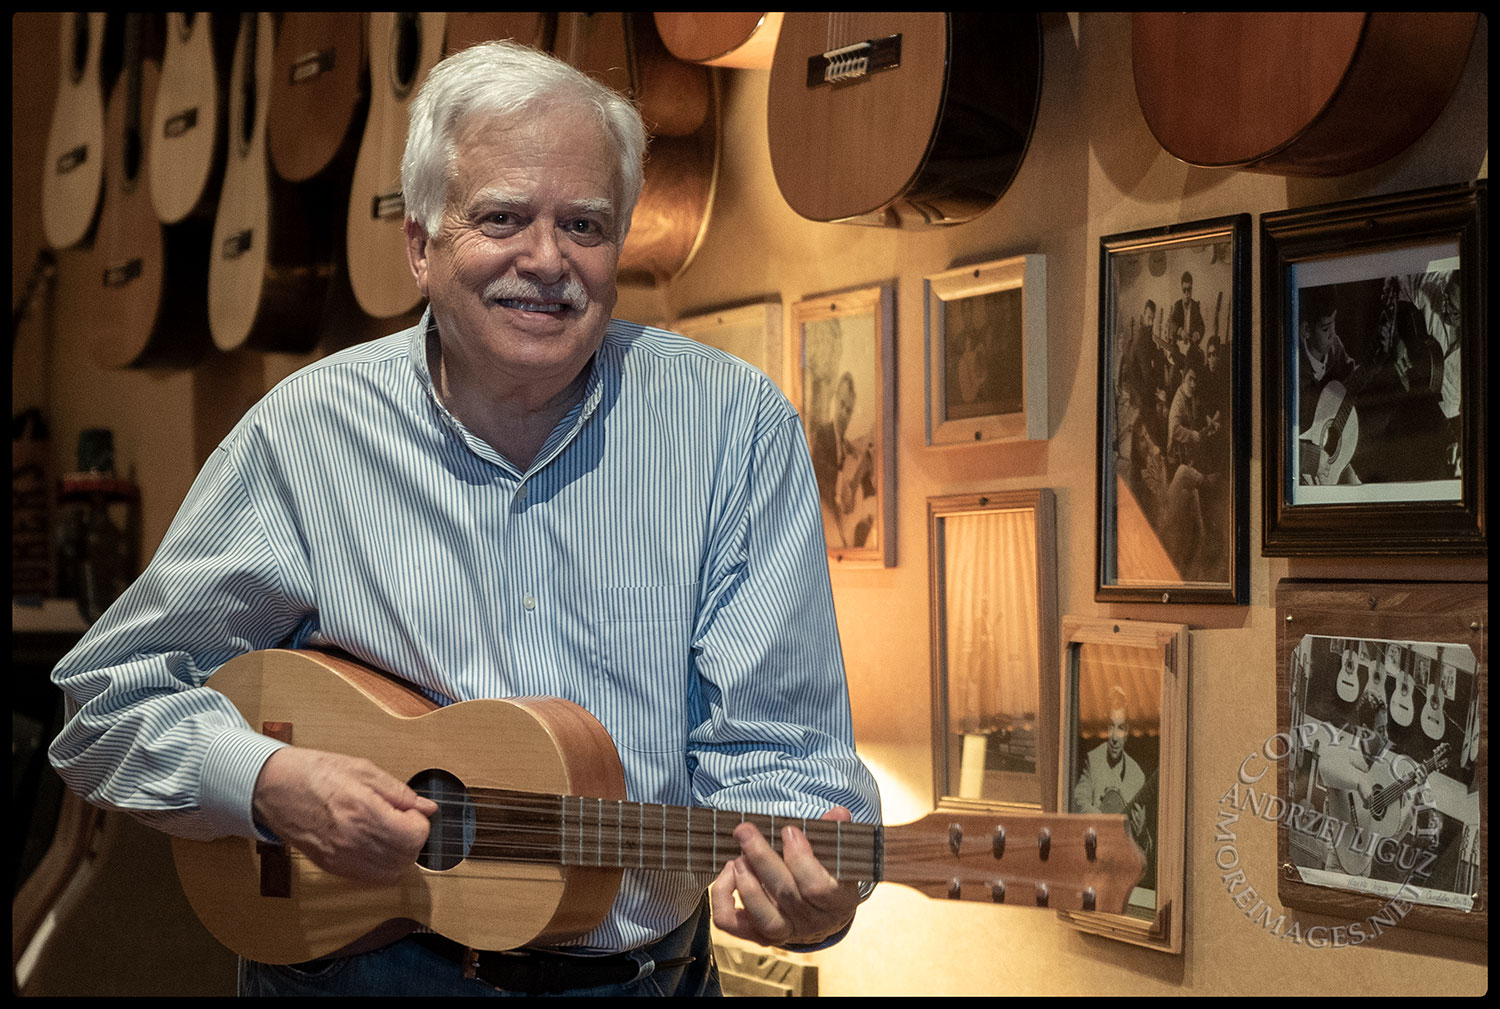 Van Dyke Parks, Candelas Guitars, Boyle Heights, CA Apr 2018